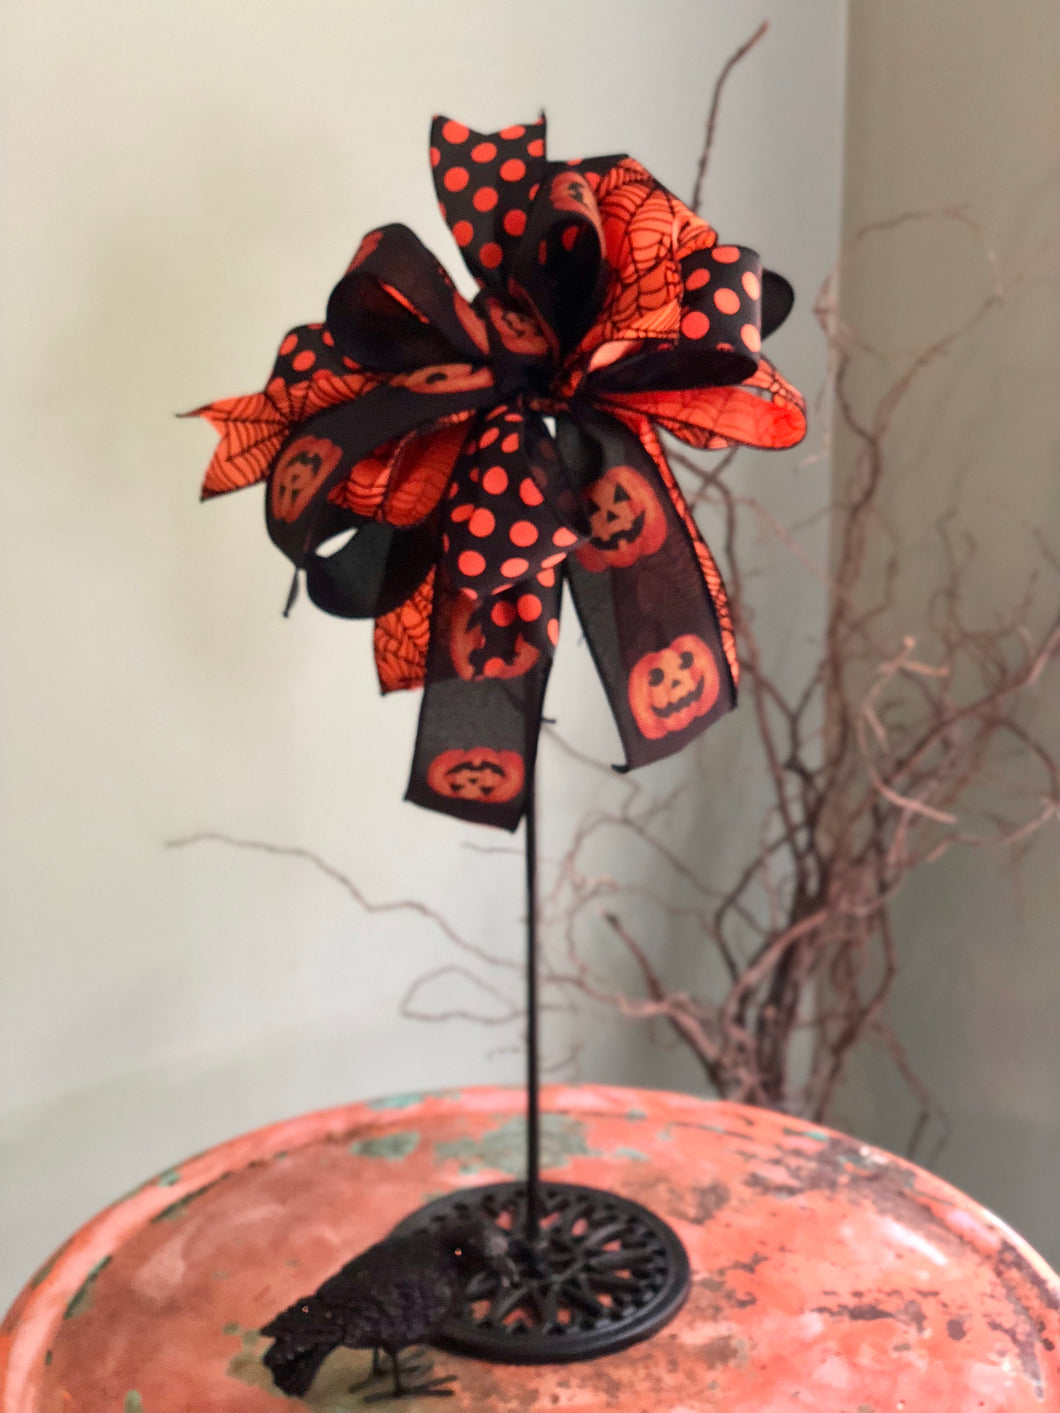 The Maleficent Black Orange Halloween Spiderweb Bow